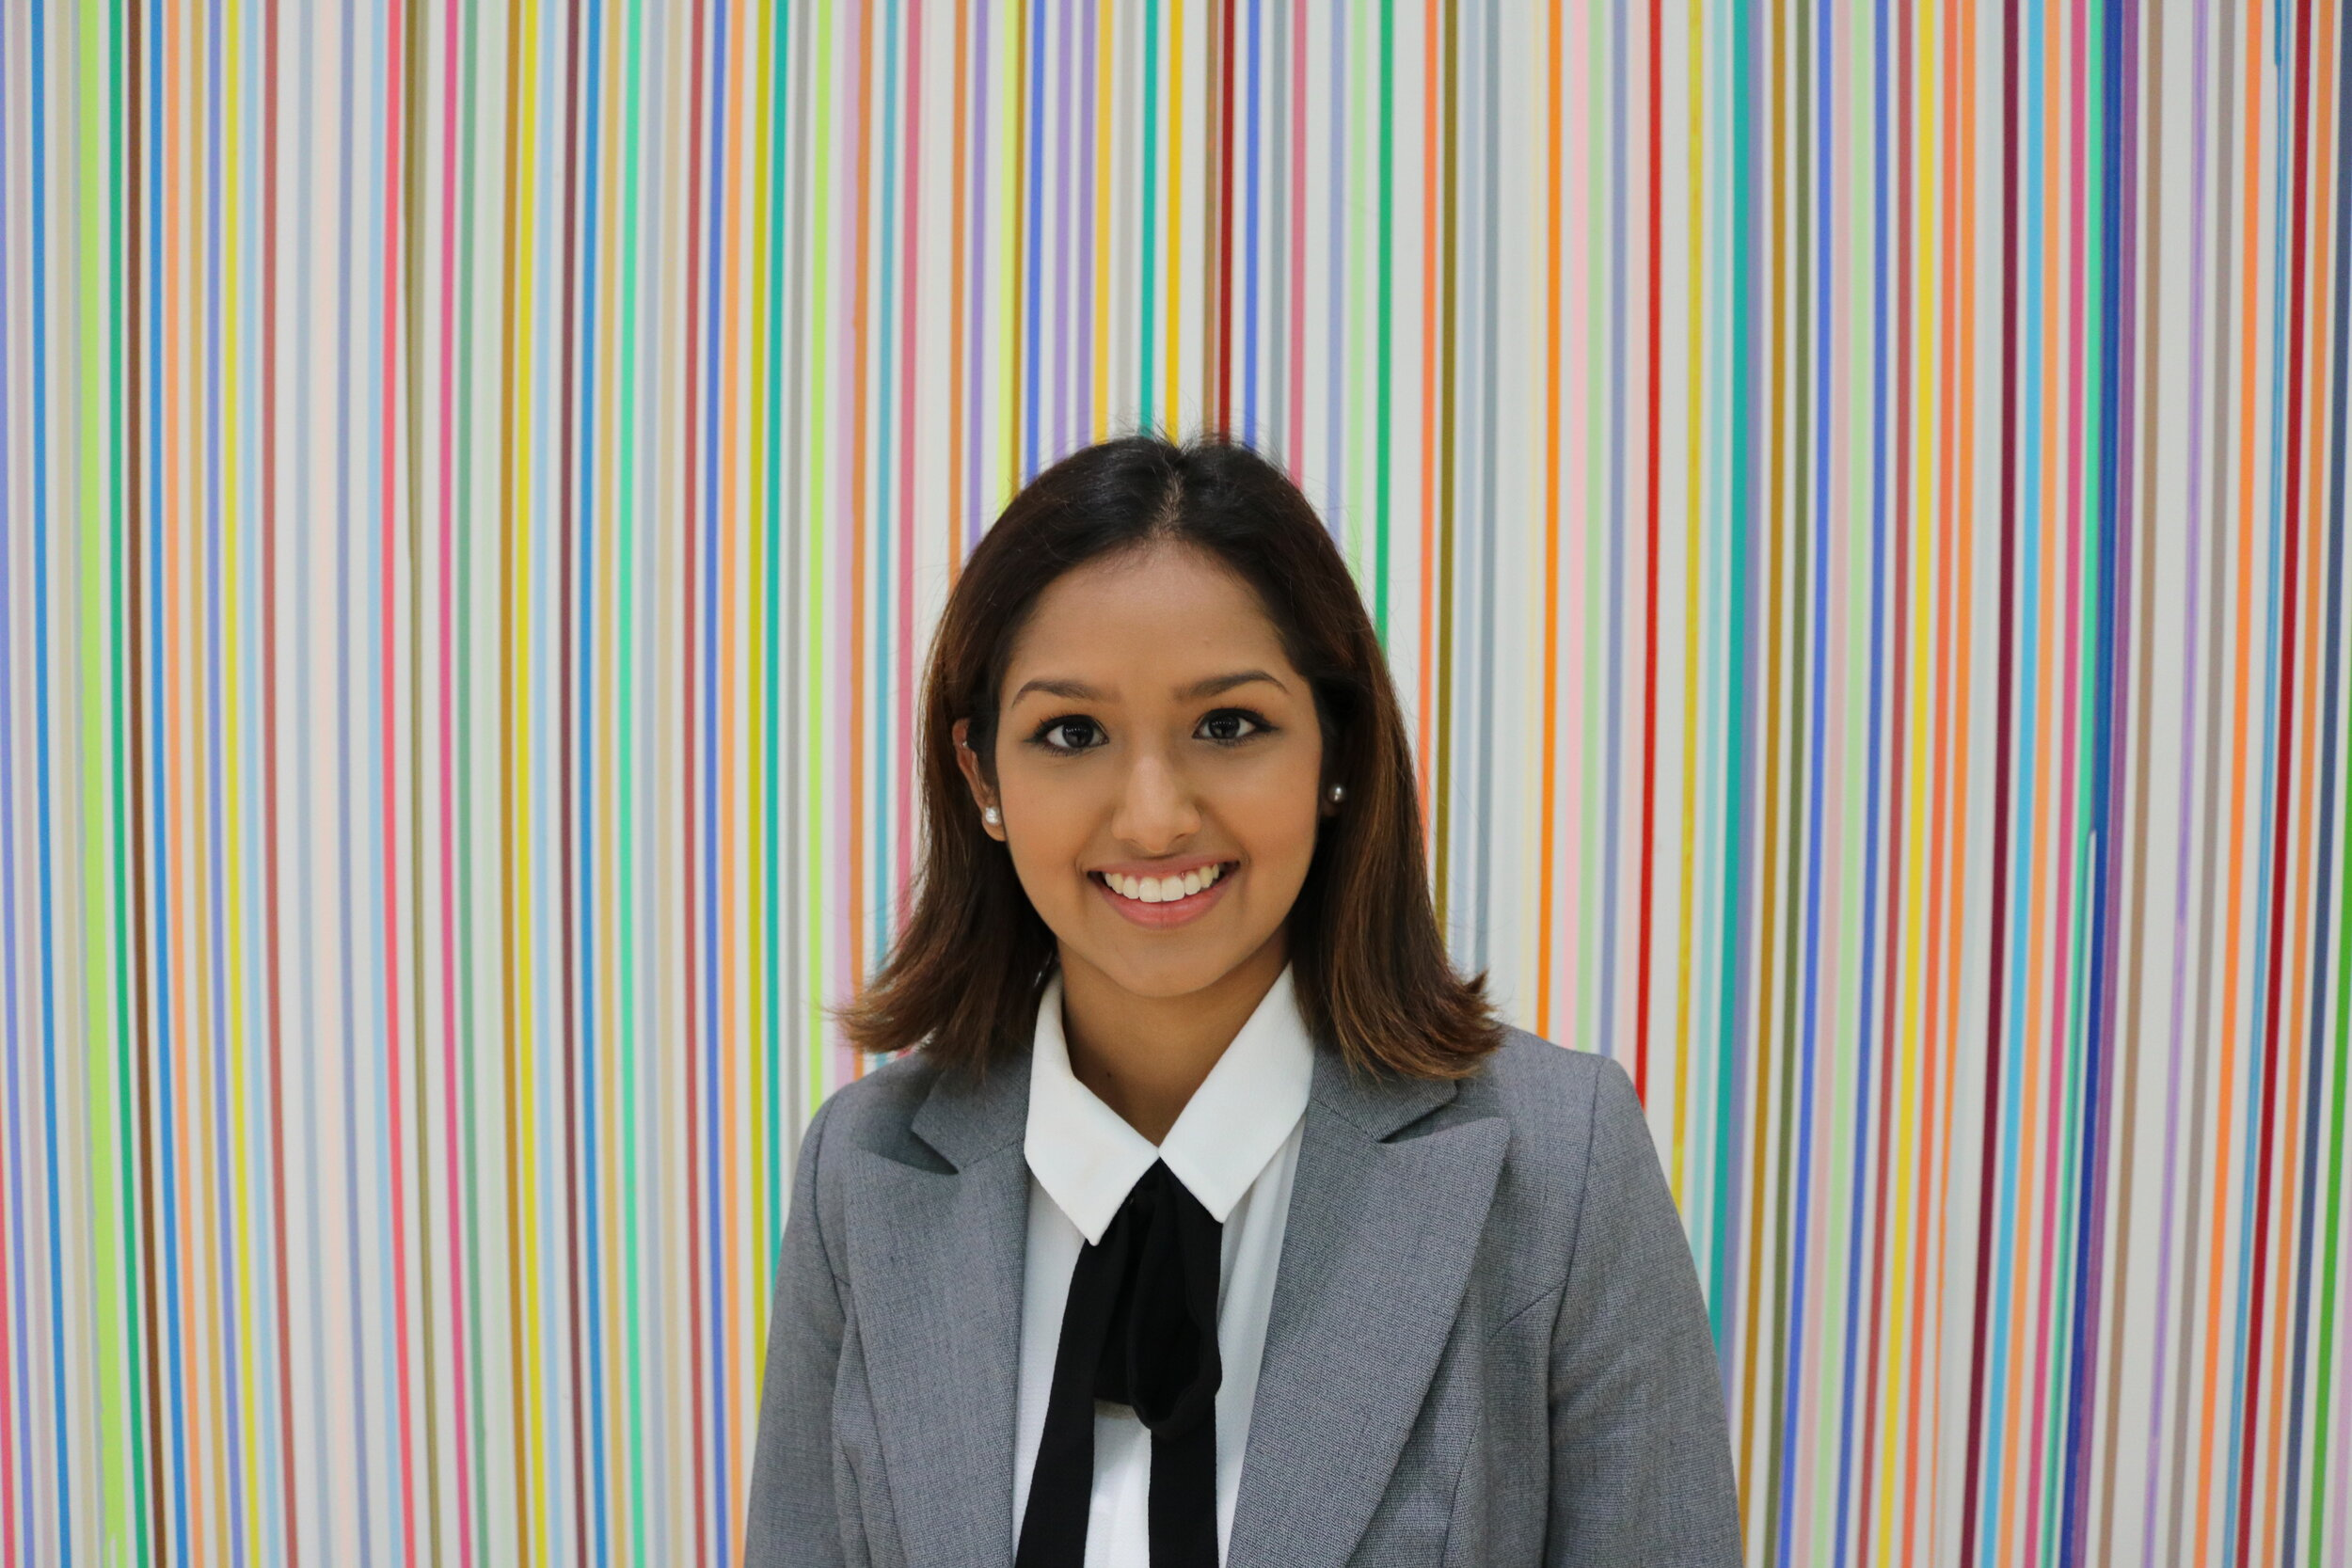 Law Ball Coordinator 2020:Ashali Herai - I am delighted to have been elected as your Law Ball Coordinator for 2019/20! Our annual Law Ball has firmly established itself as Warwick Law Society's most celebrated event of the year. My goal is that Law Ball 2020 will continue to build on the incredible standard set by previous years. I intend to design an evening of elegance and style, treating our members to a stunning party. I am honoured to be part of Warwick Law Society, a community that consistently offers enthusiastic support to fellow students. In the next year, I am most excited to collaborate with other passionate and committed individuals!